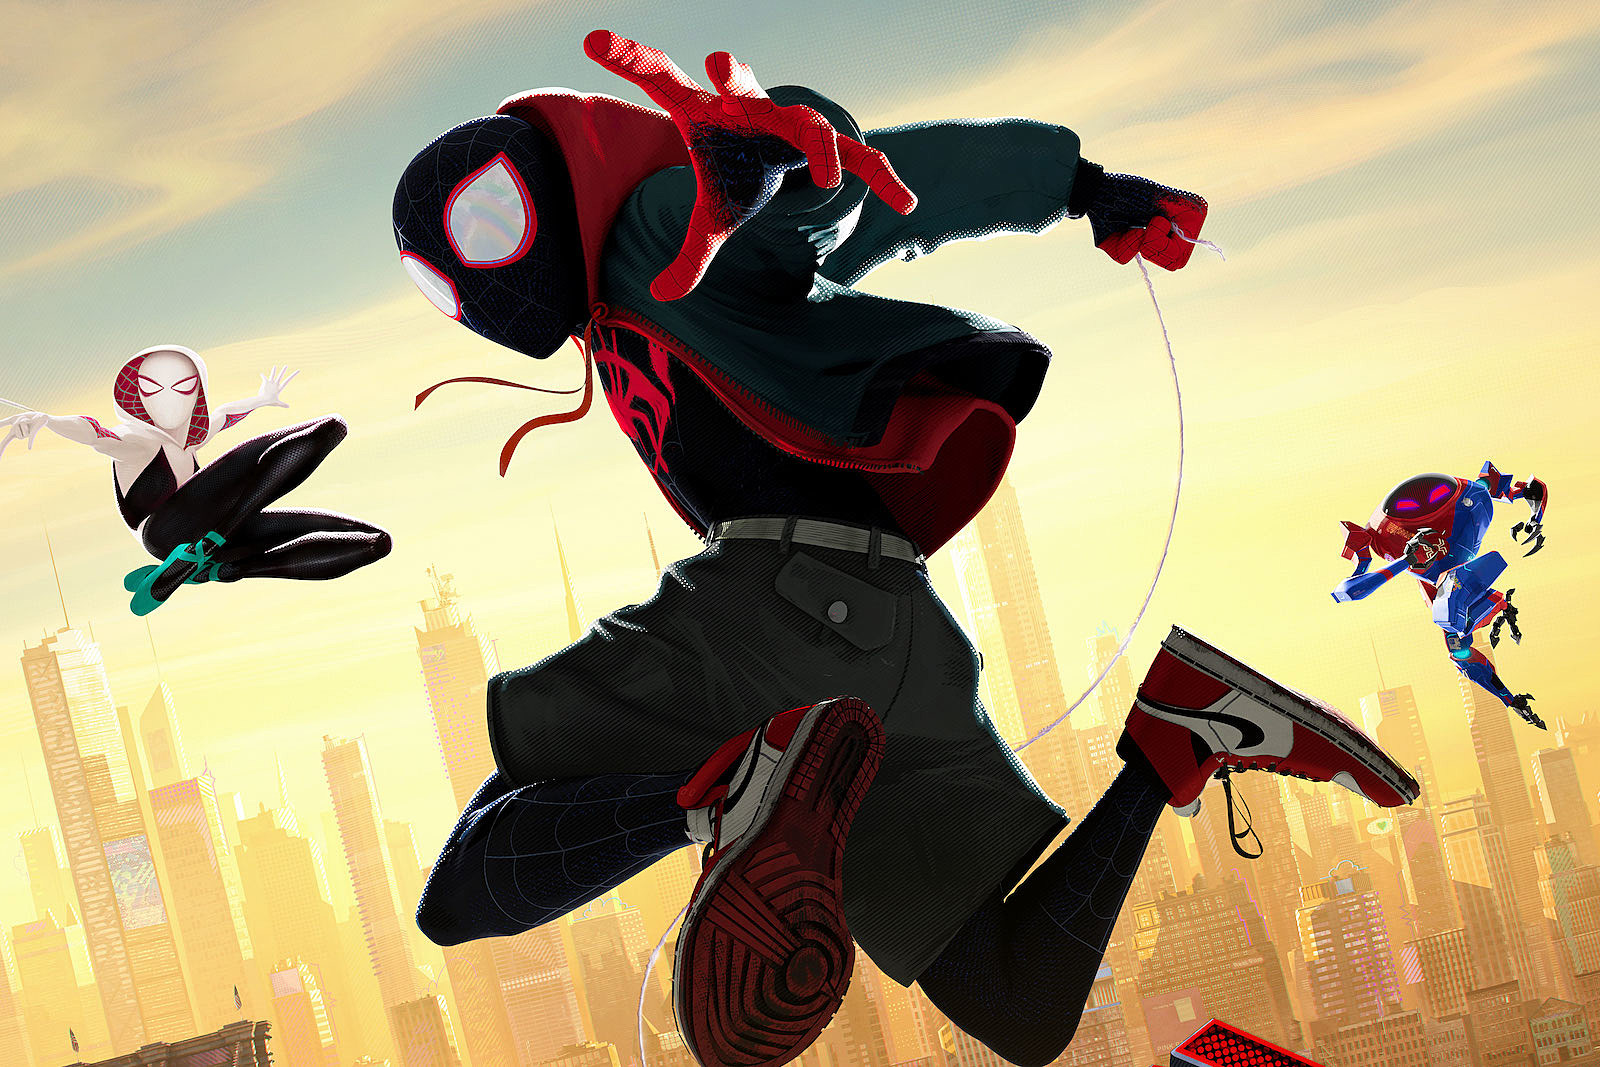 into-the-spider-verse-poster_1.jpg